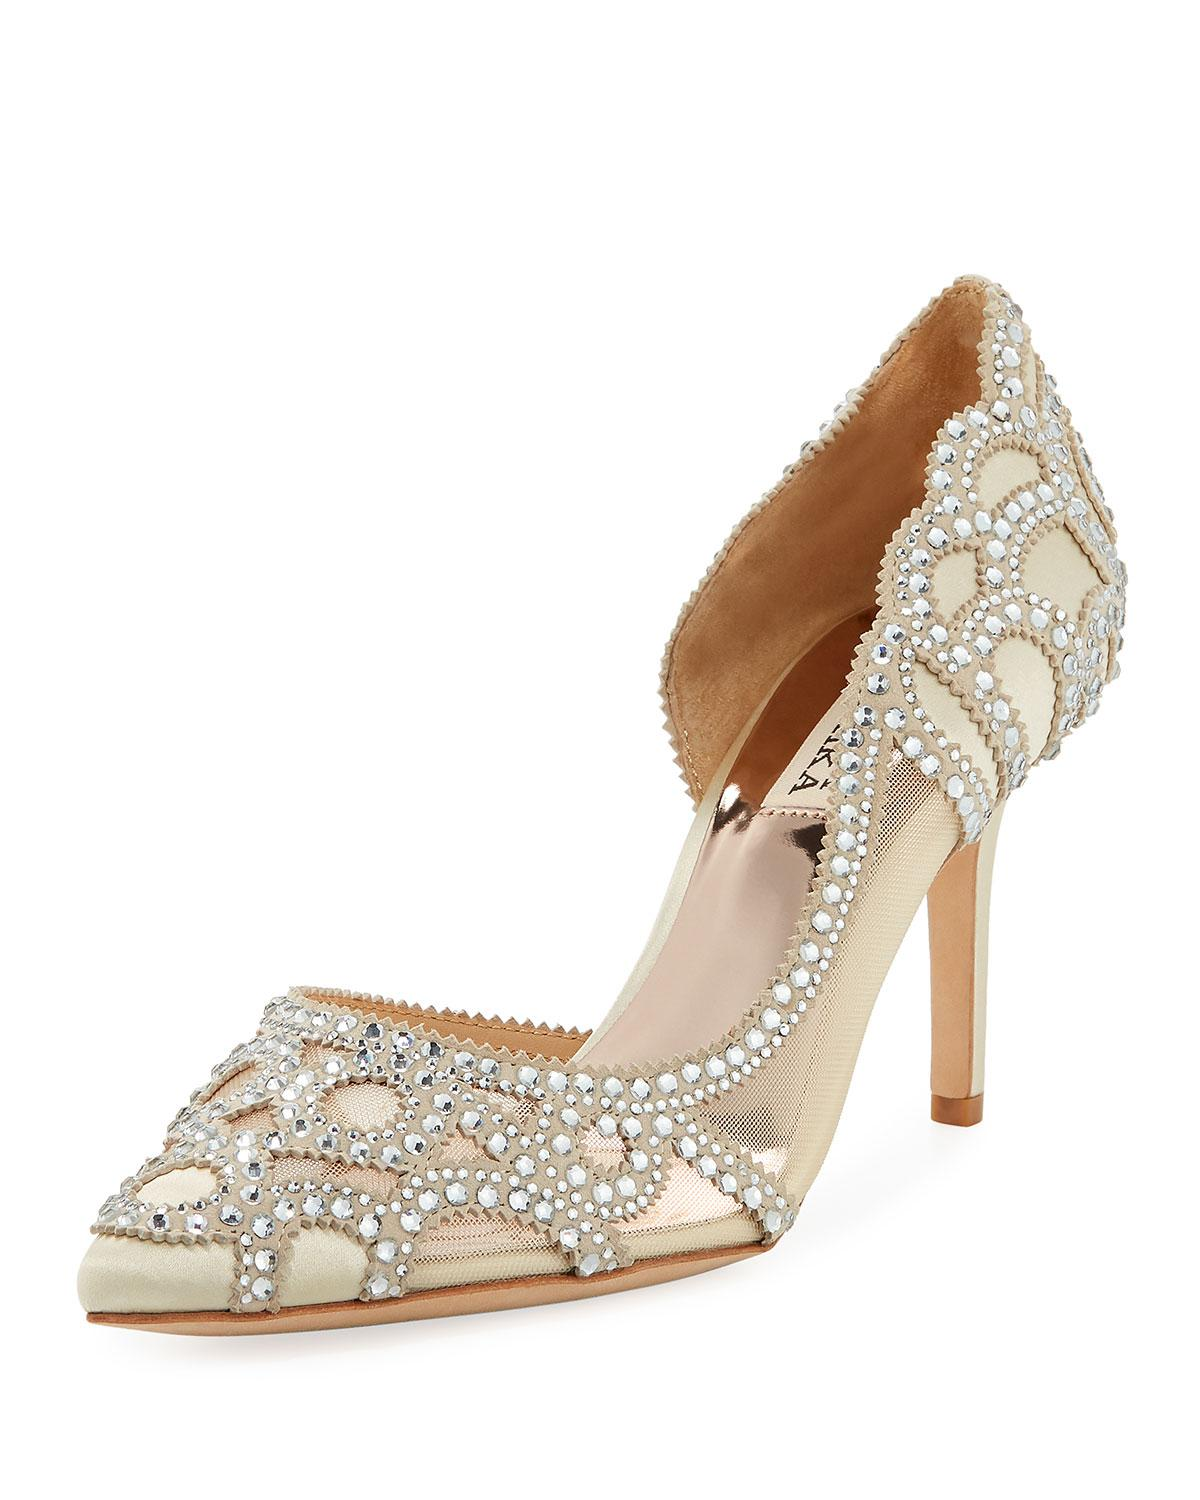 60eef2811d2 Lyst - Badgley Mischka Marissa Crystal-embellished Satin Pumps in White